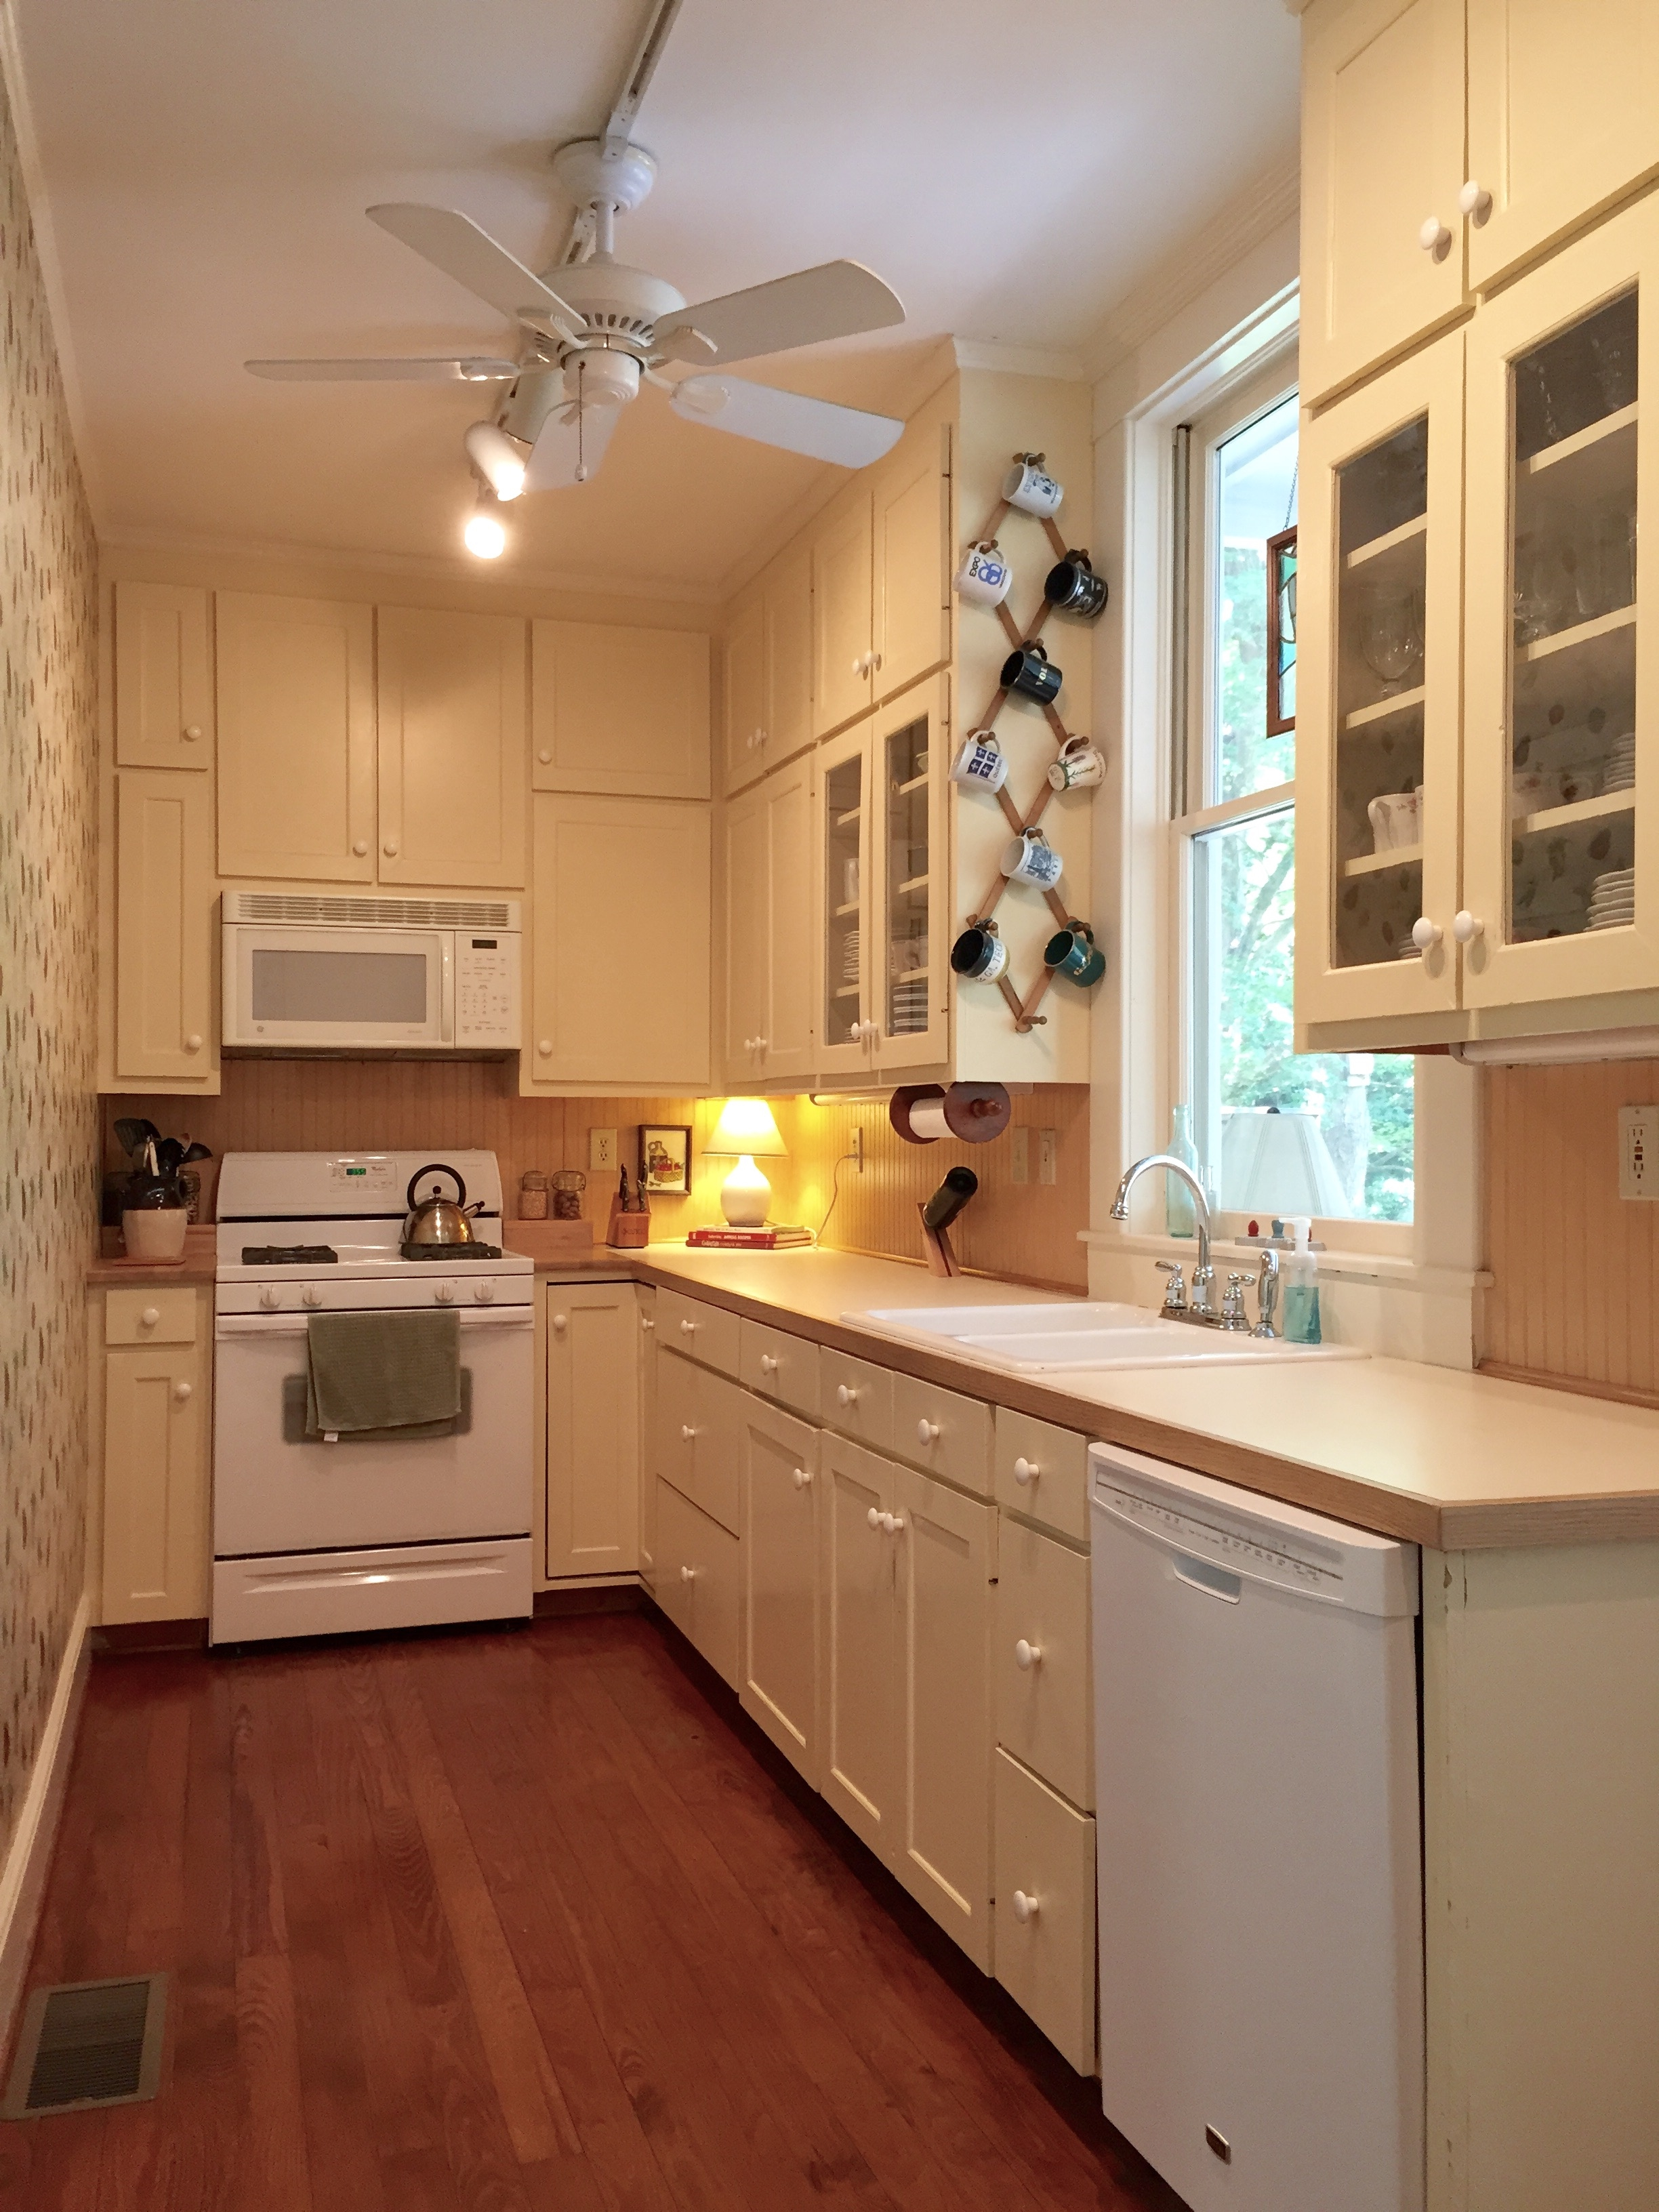 When we started the update, we had simple shaker cabinets with porcelain knobs, laminate countertops, track lighting, a bead board backsplash, and basic white appliances.